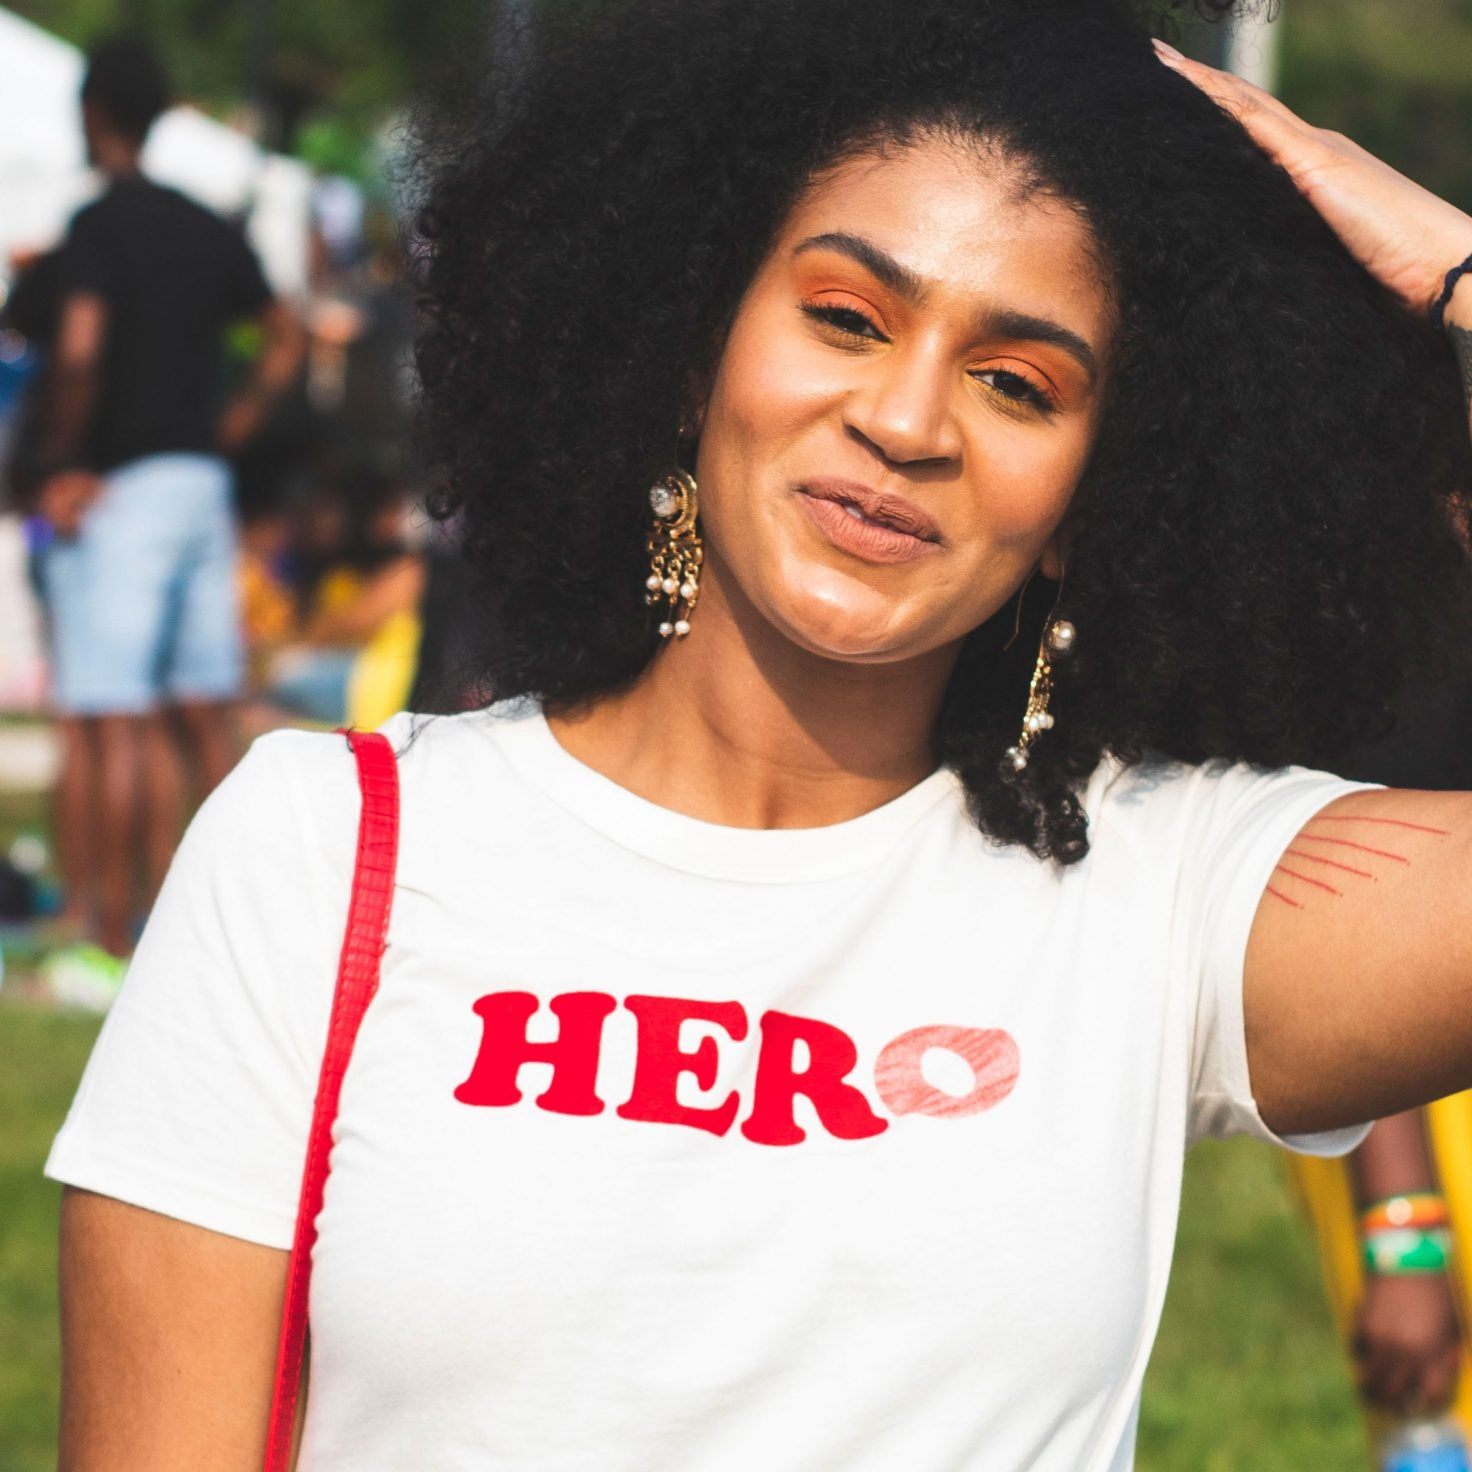 Beauty Was Center Stage At The Roots Picnic 2019